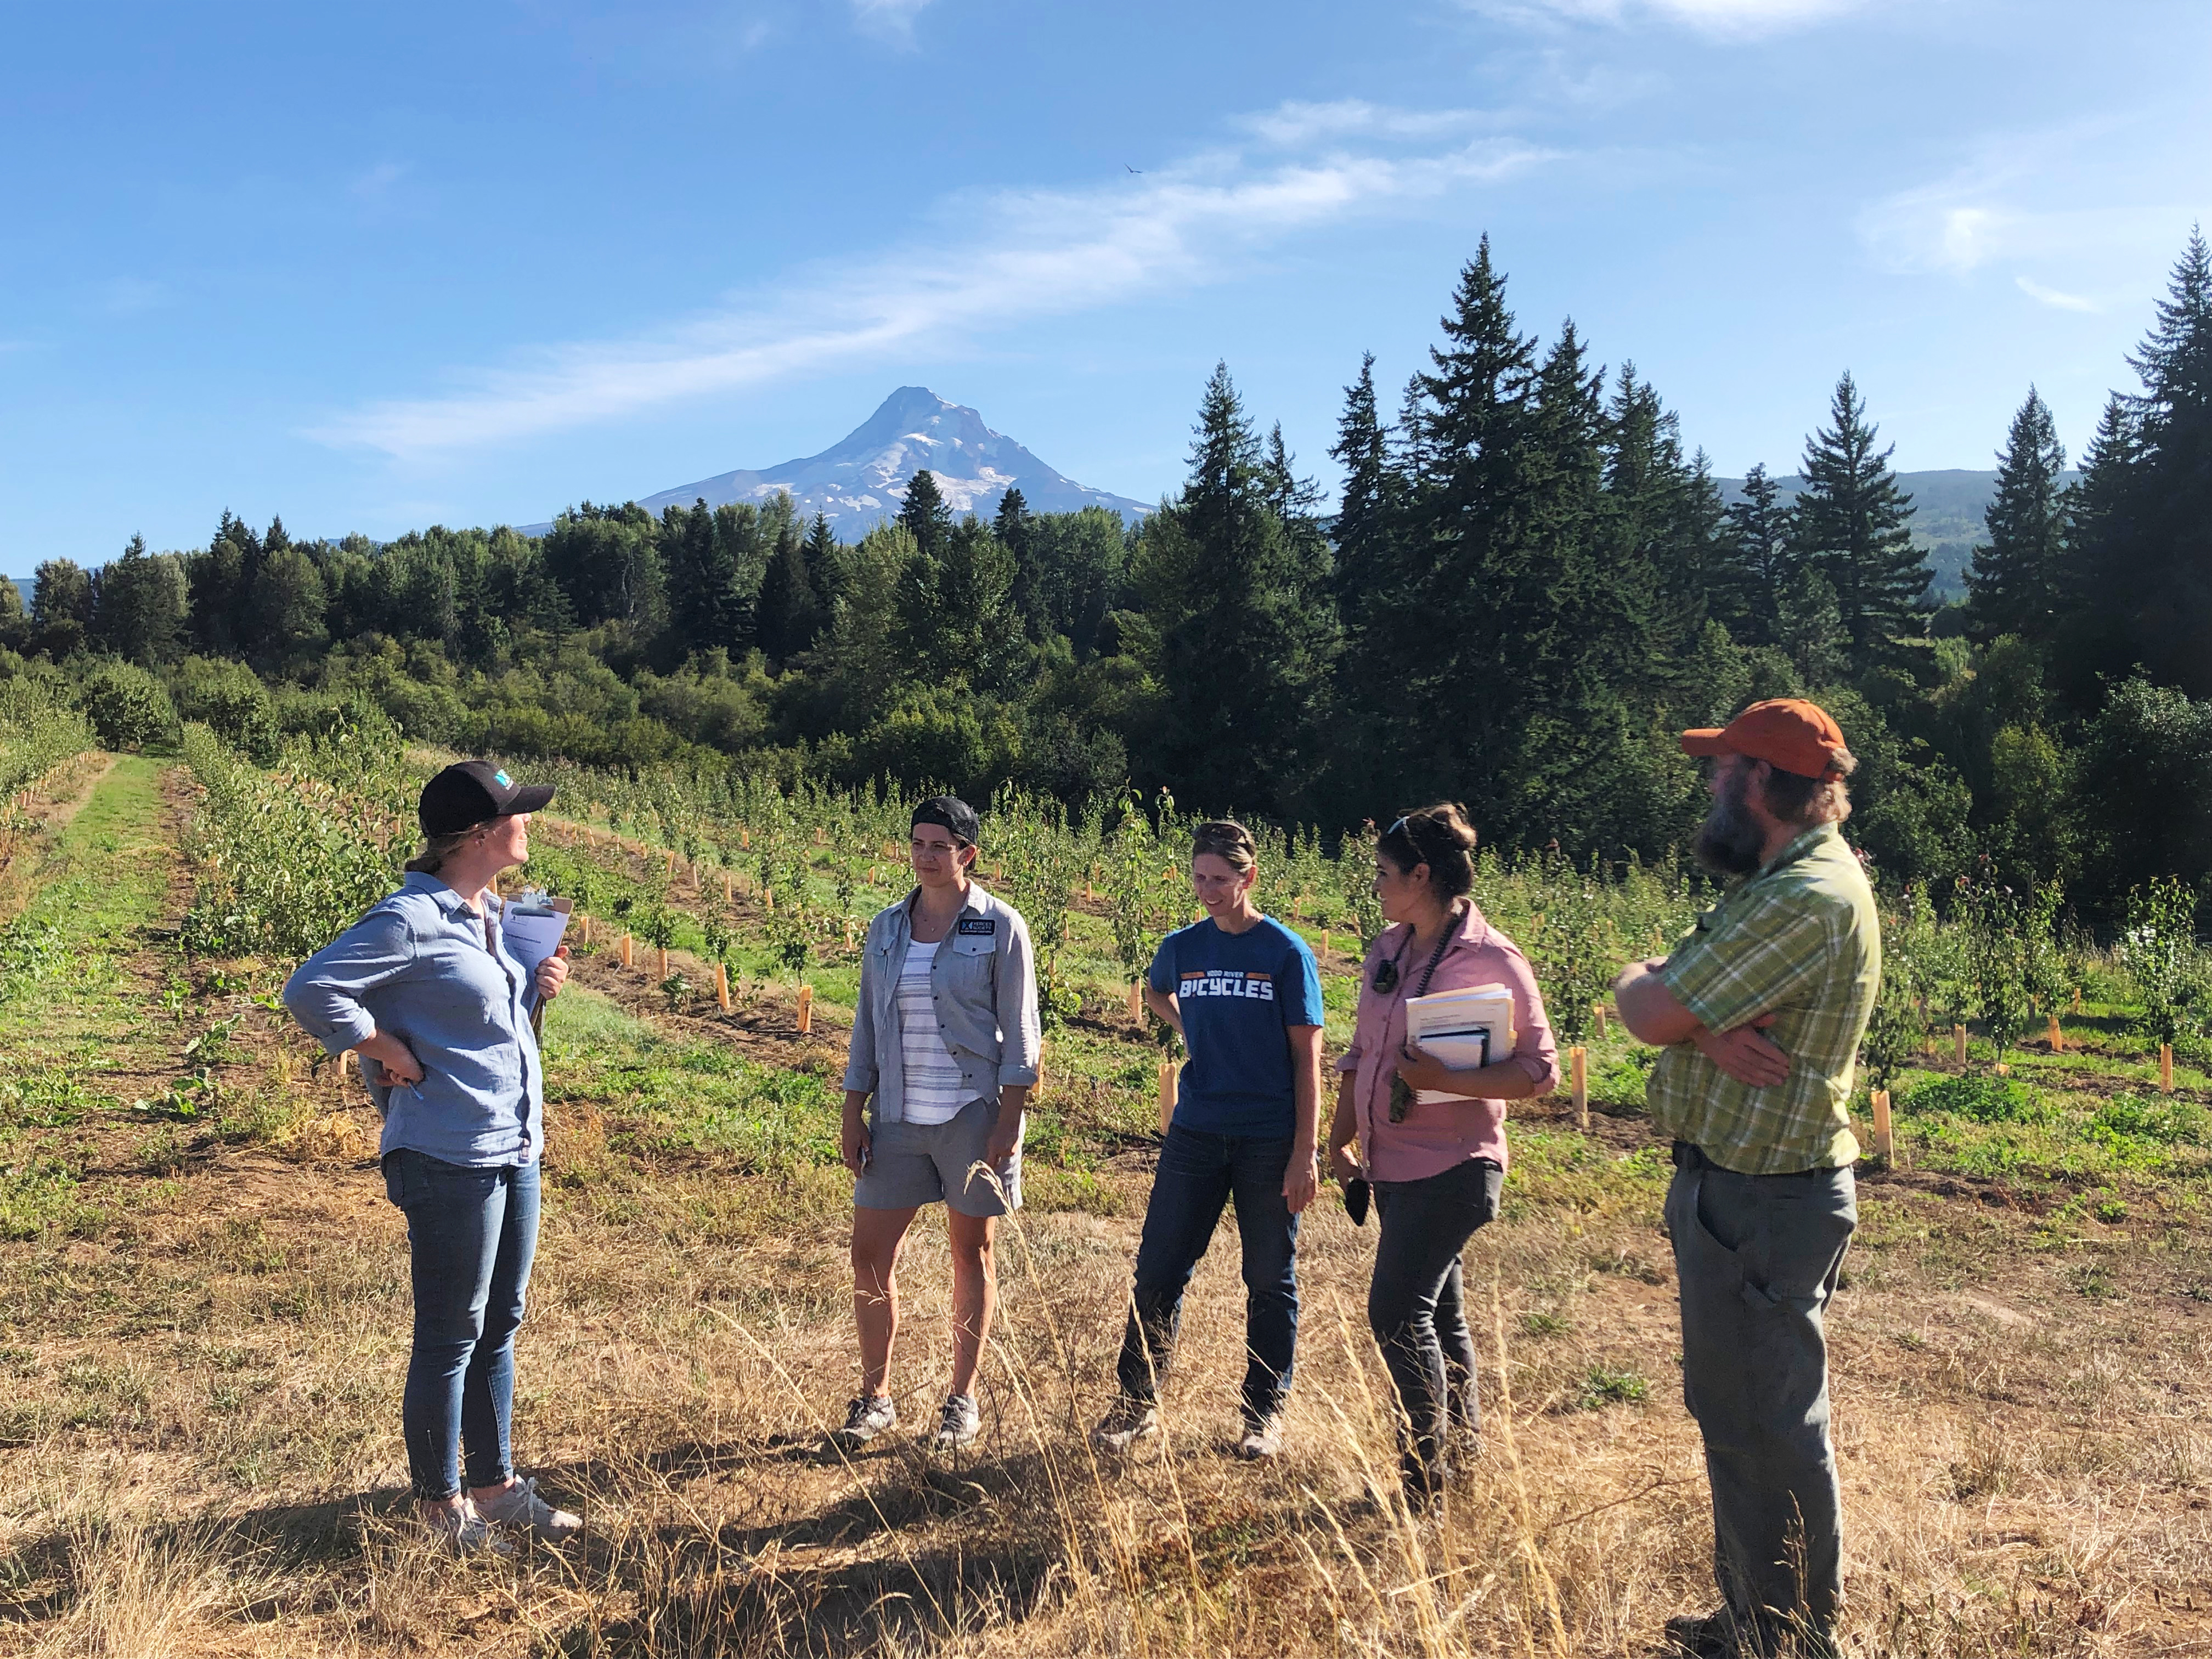 On a sunny day with blue sky, five people stand talking together in the foreground of a beautiful landscape. Behind them is a pear orchard, and beyond is the snow-covered, triangular form of Mt. Hood.